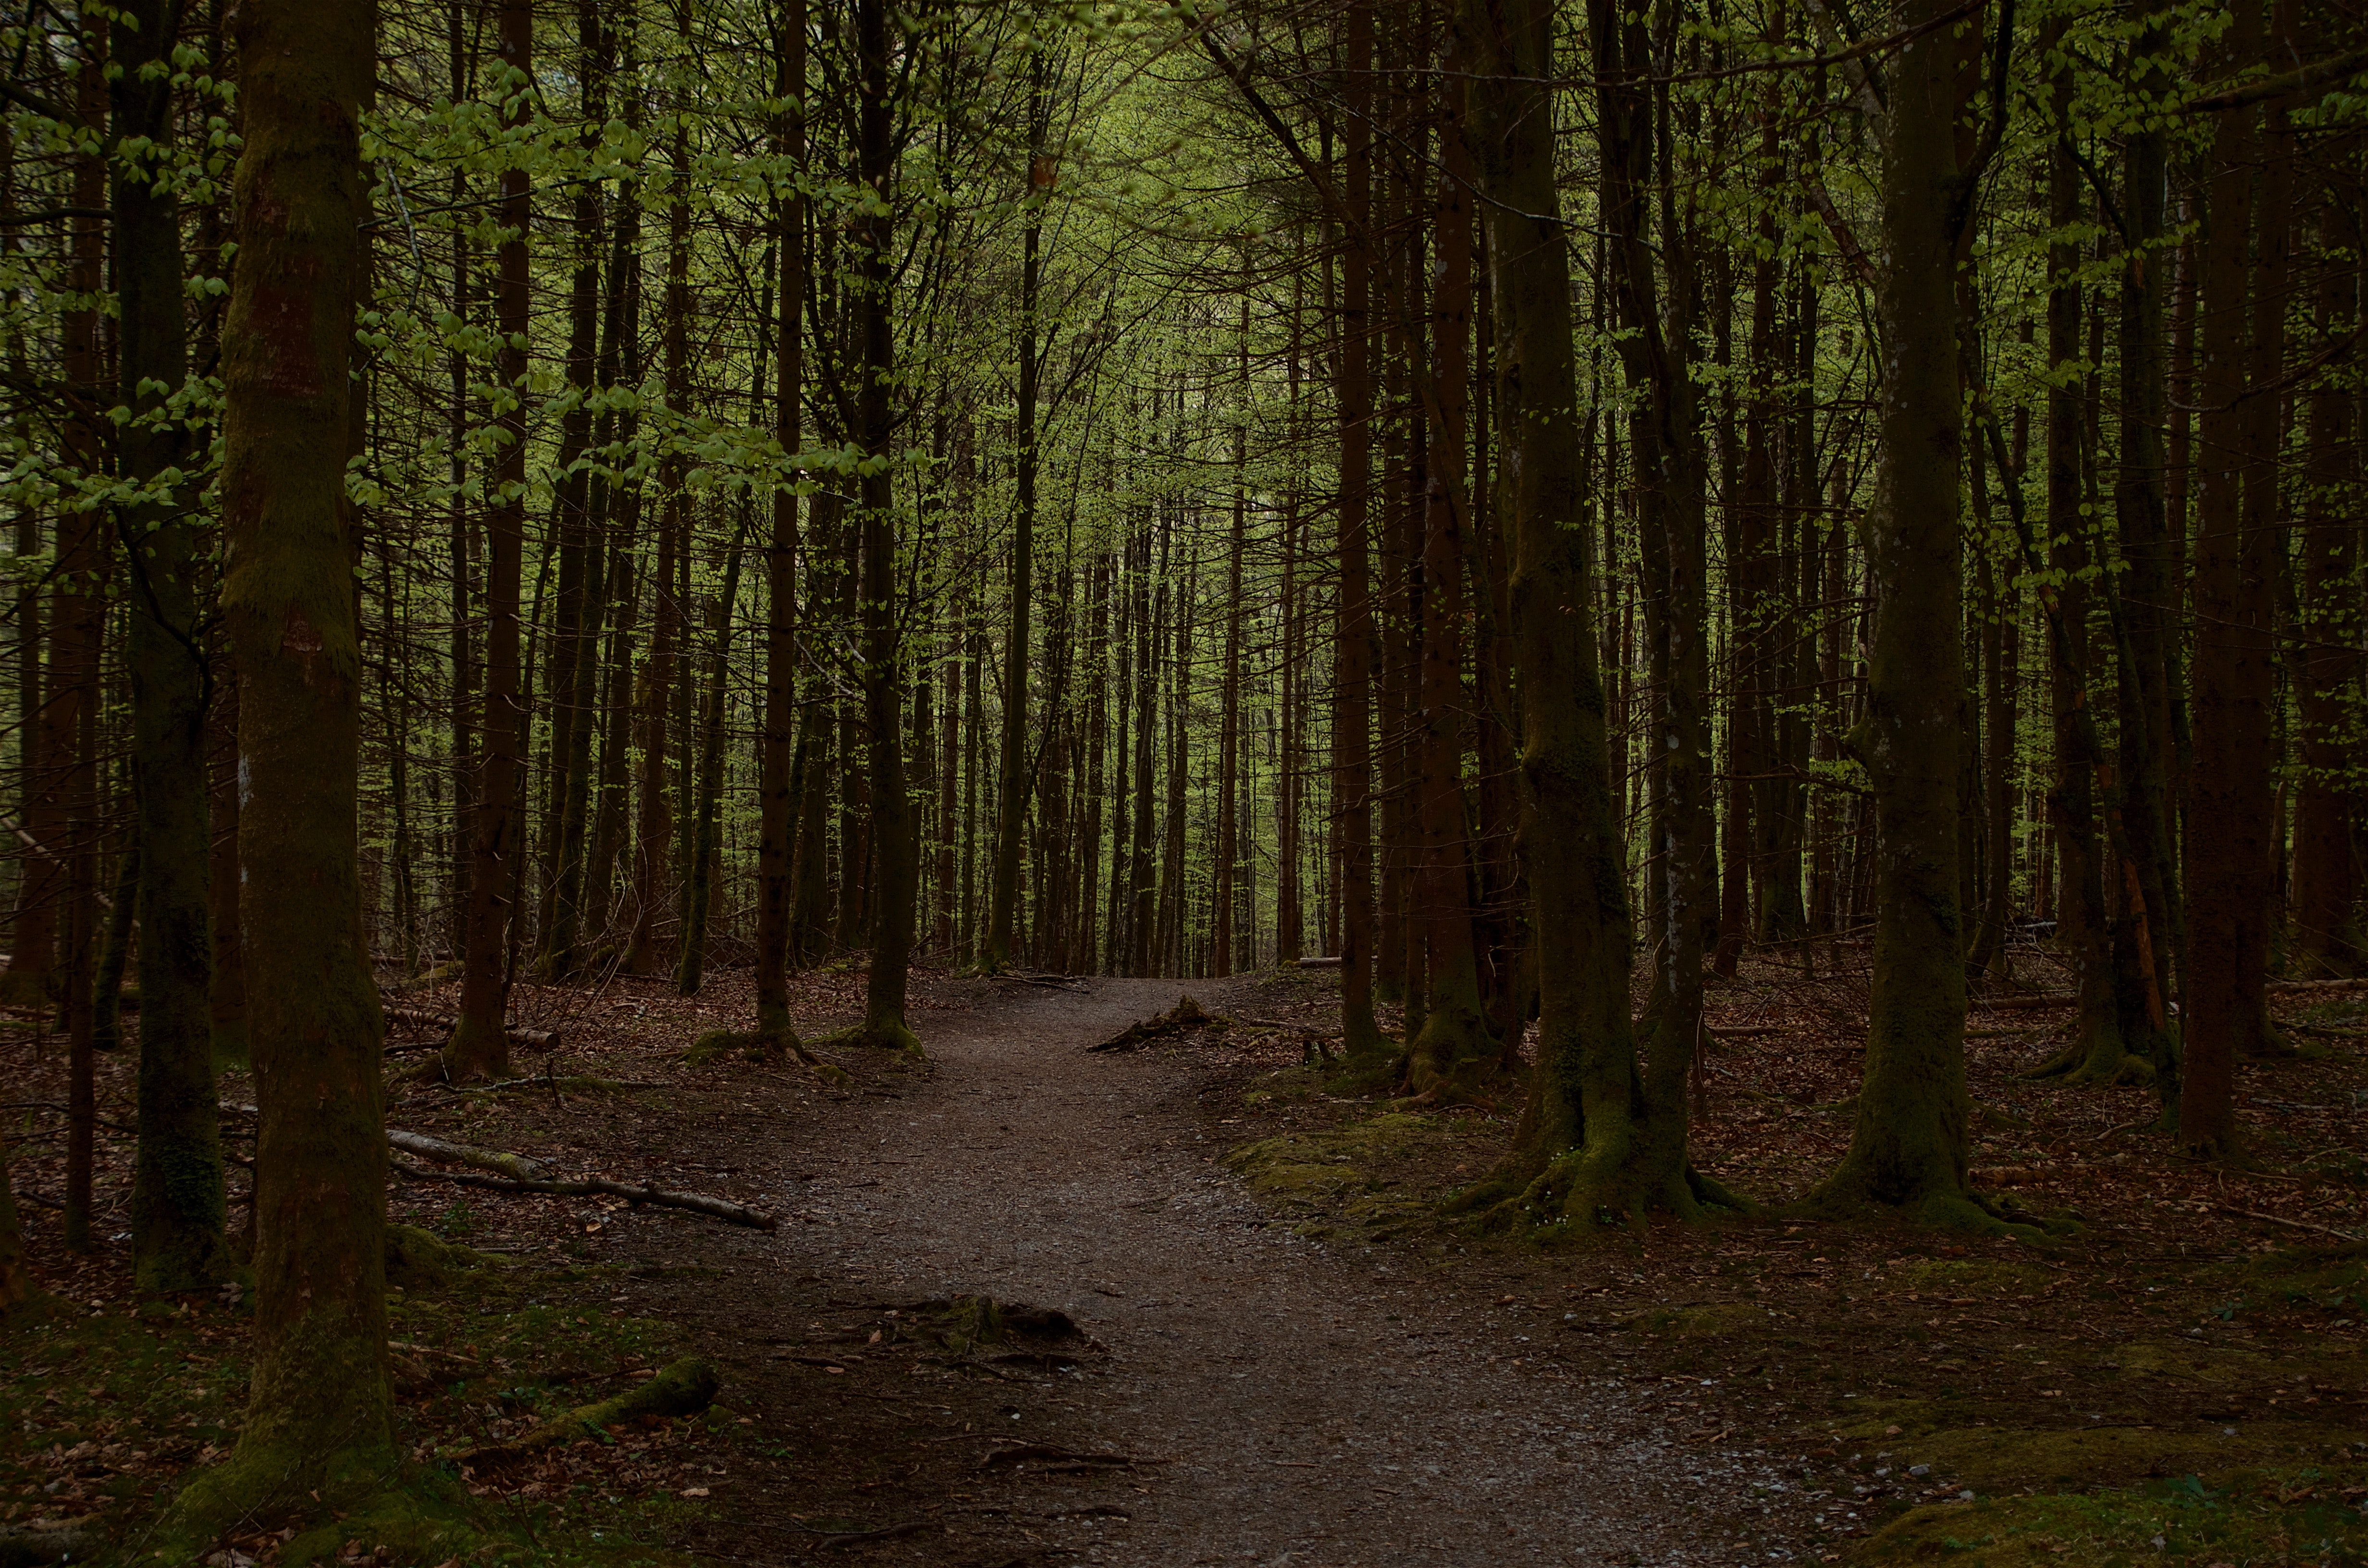 empty pathway in middle of woods during daytime